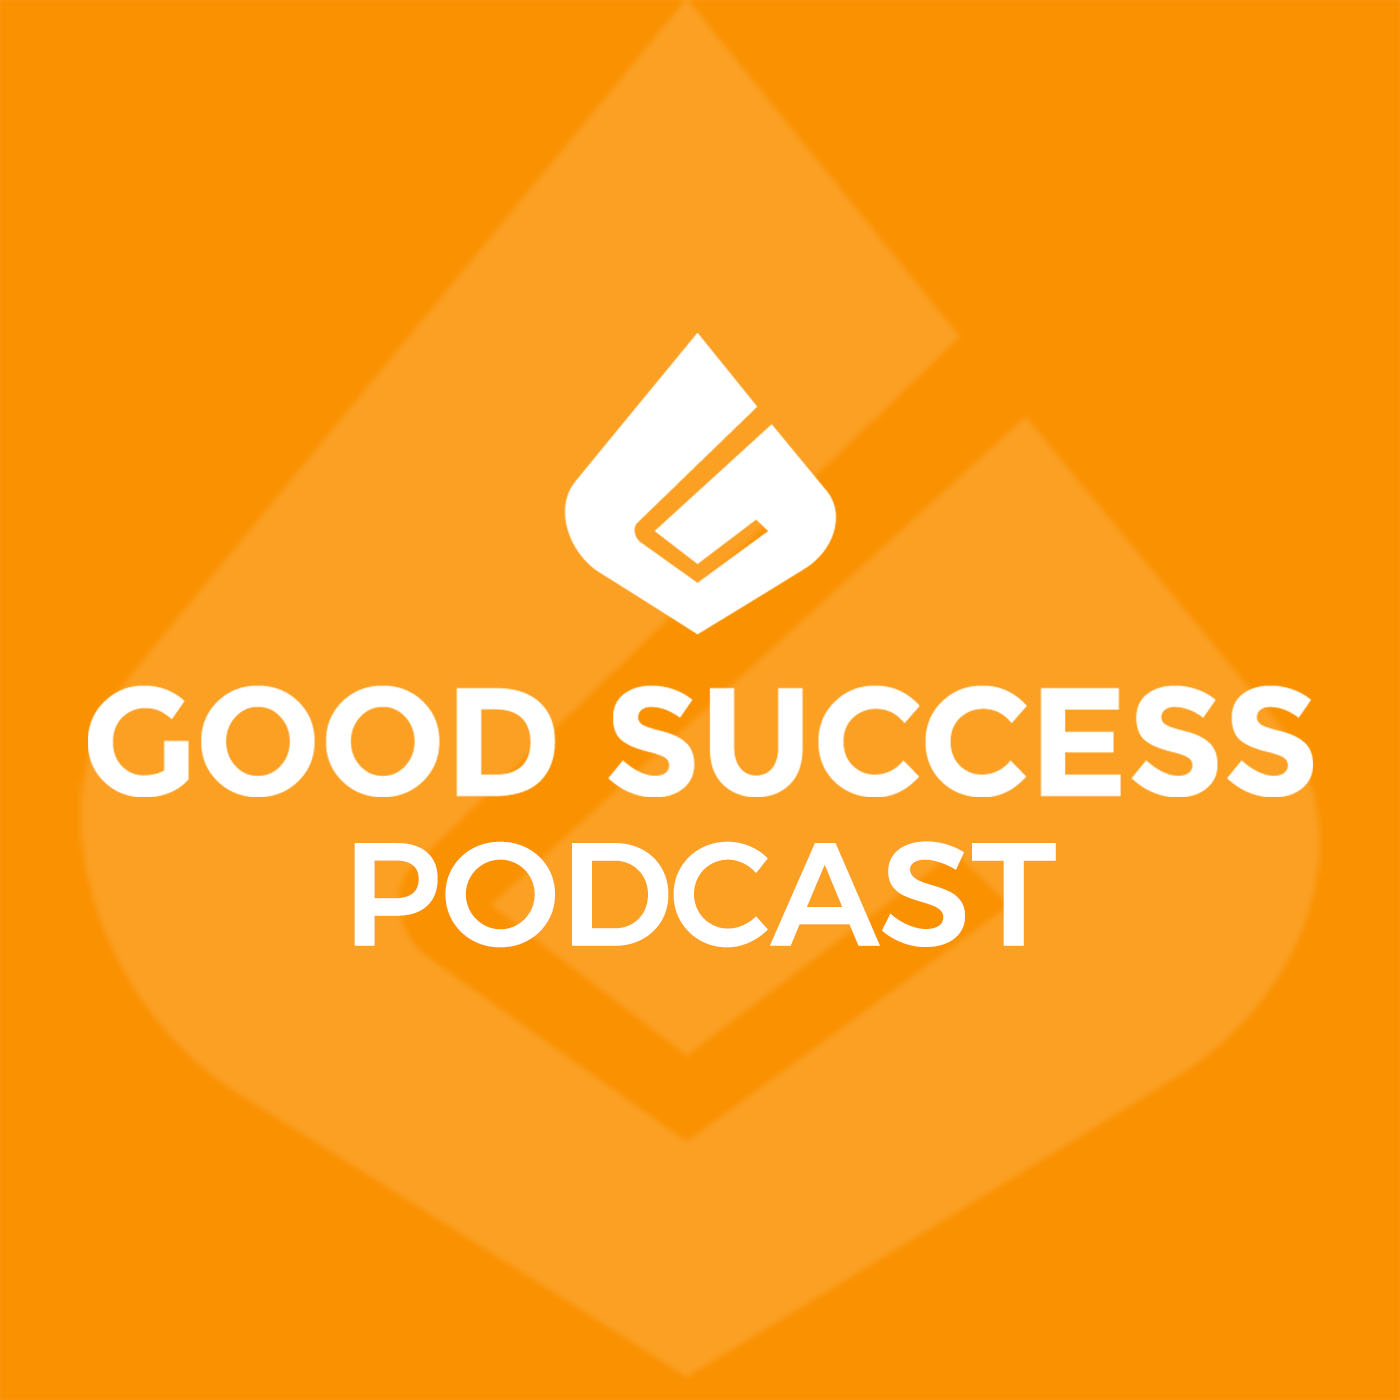 The Good Success Podcast